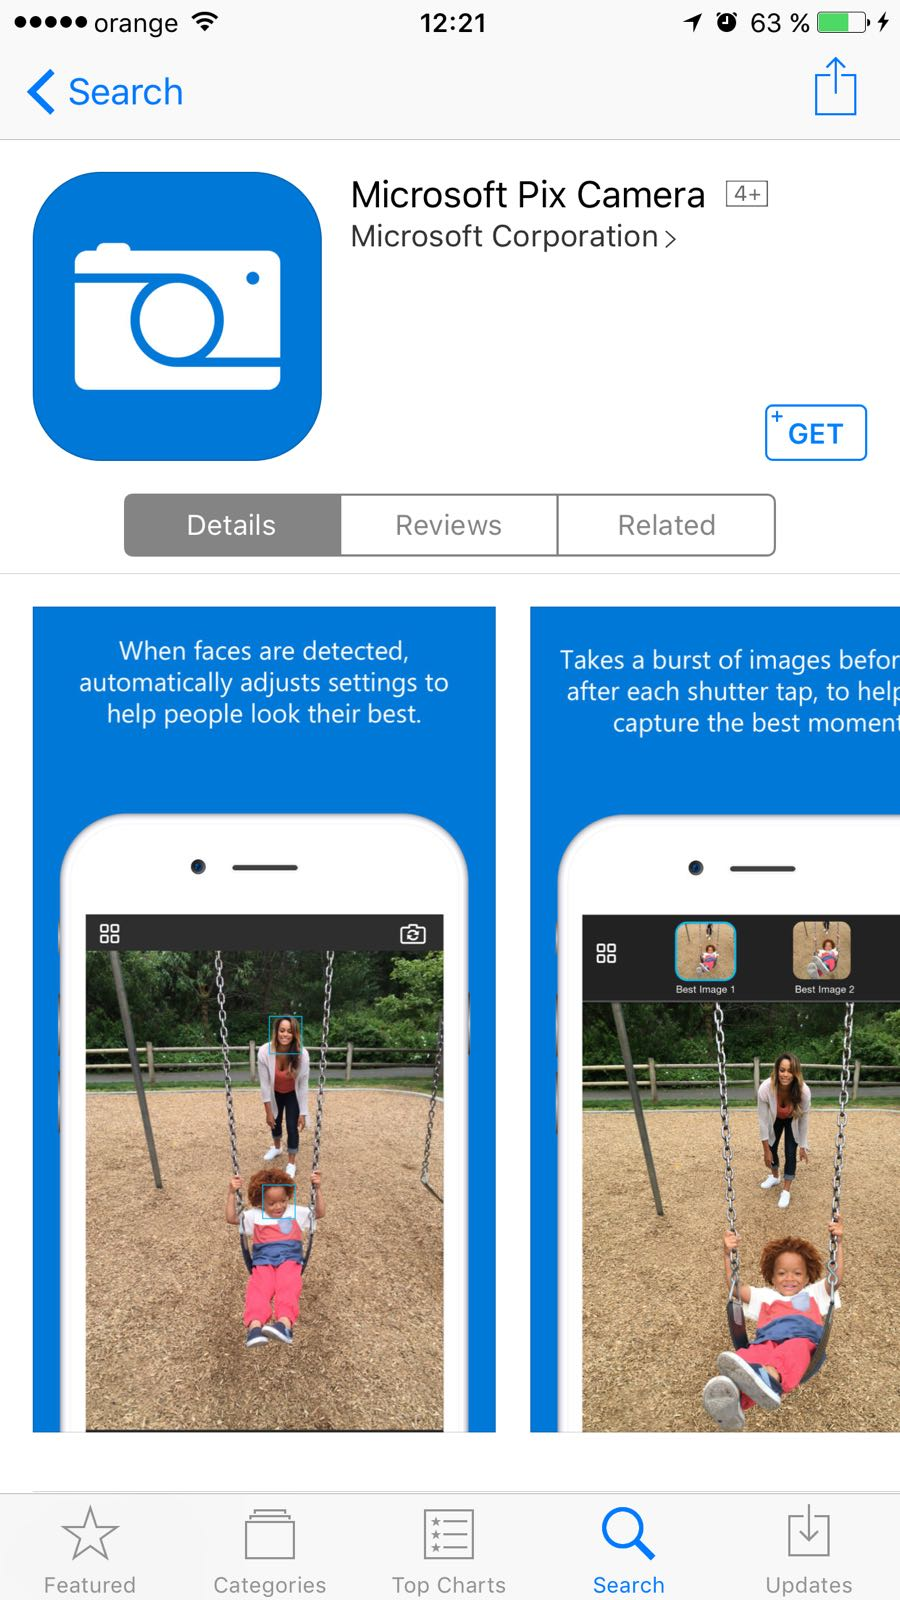 Microsoft Prepares Its Camera App for iPhone 7 and iOS 10